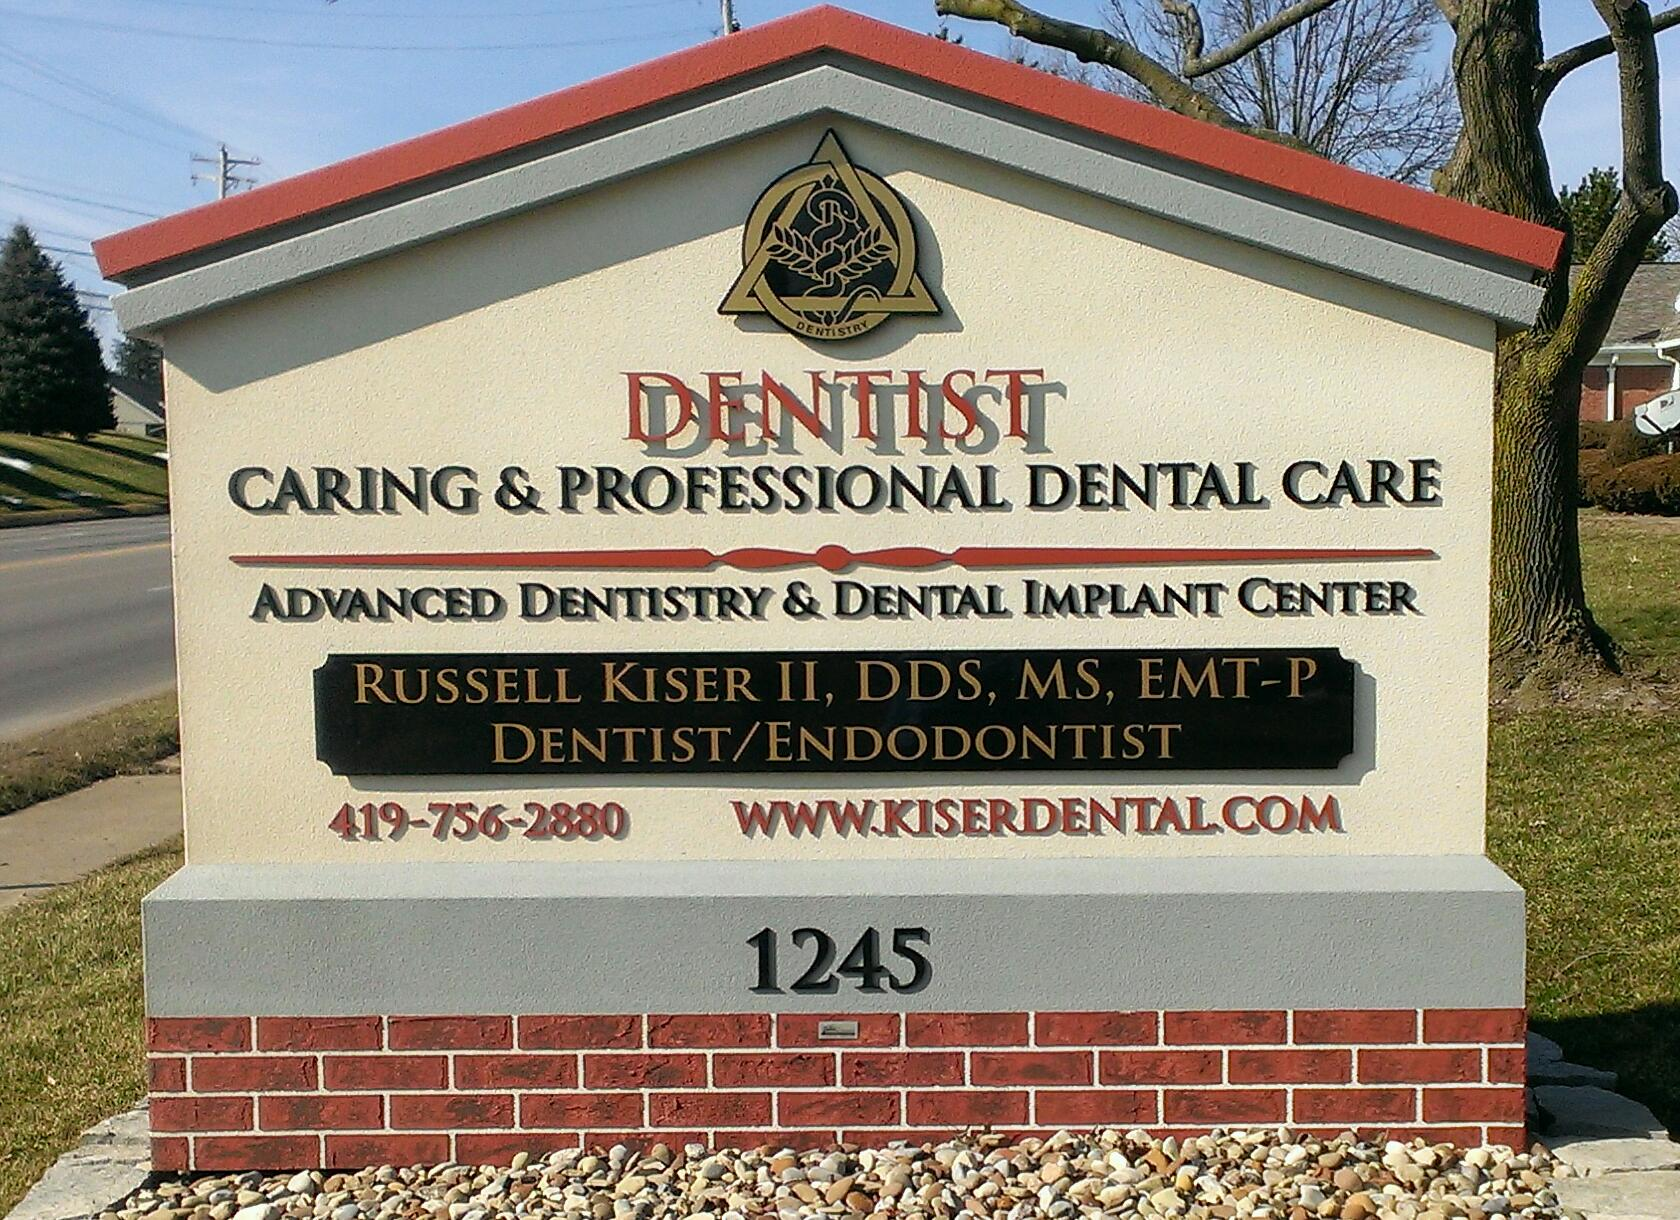 Advanced Dentistry & Dental Implant Center